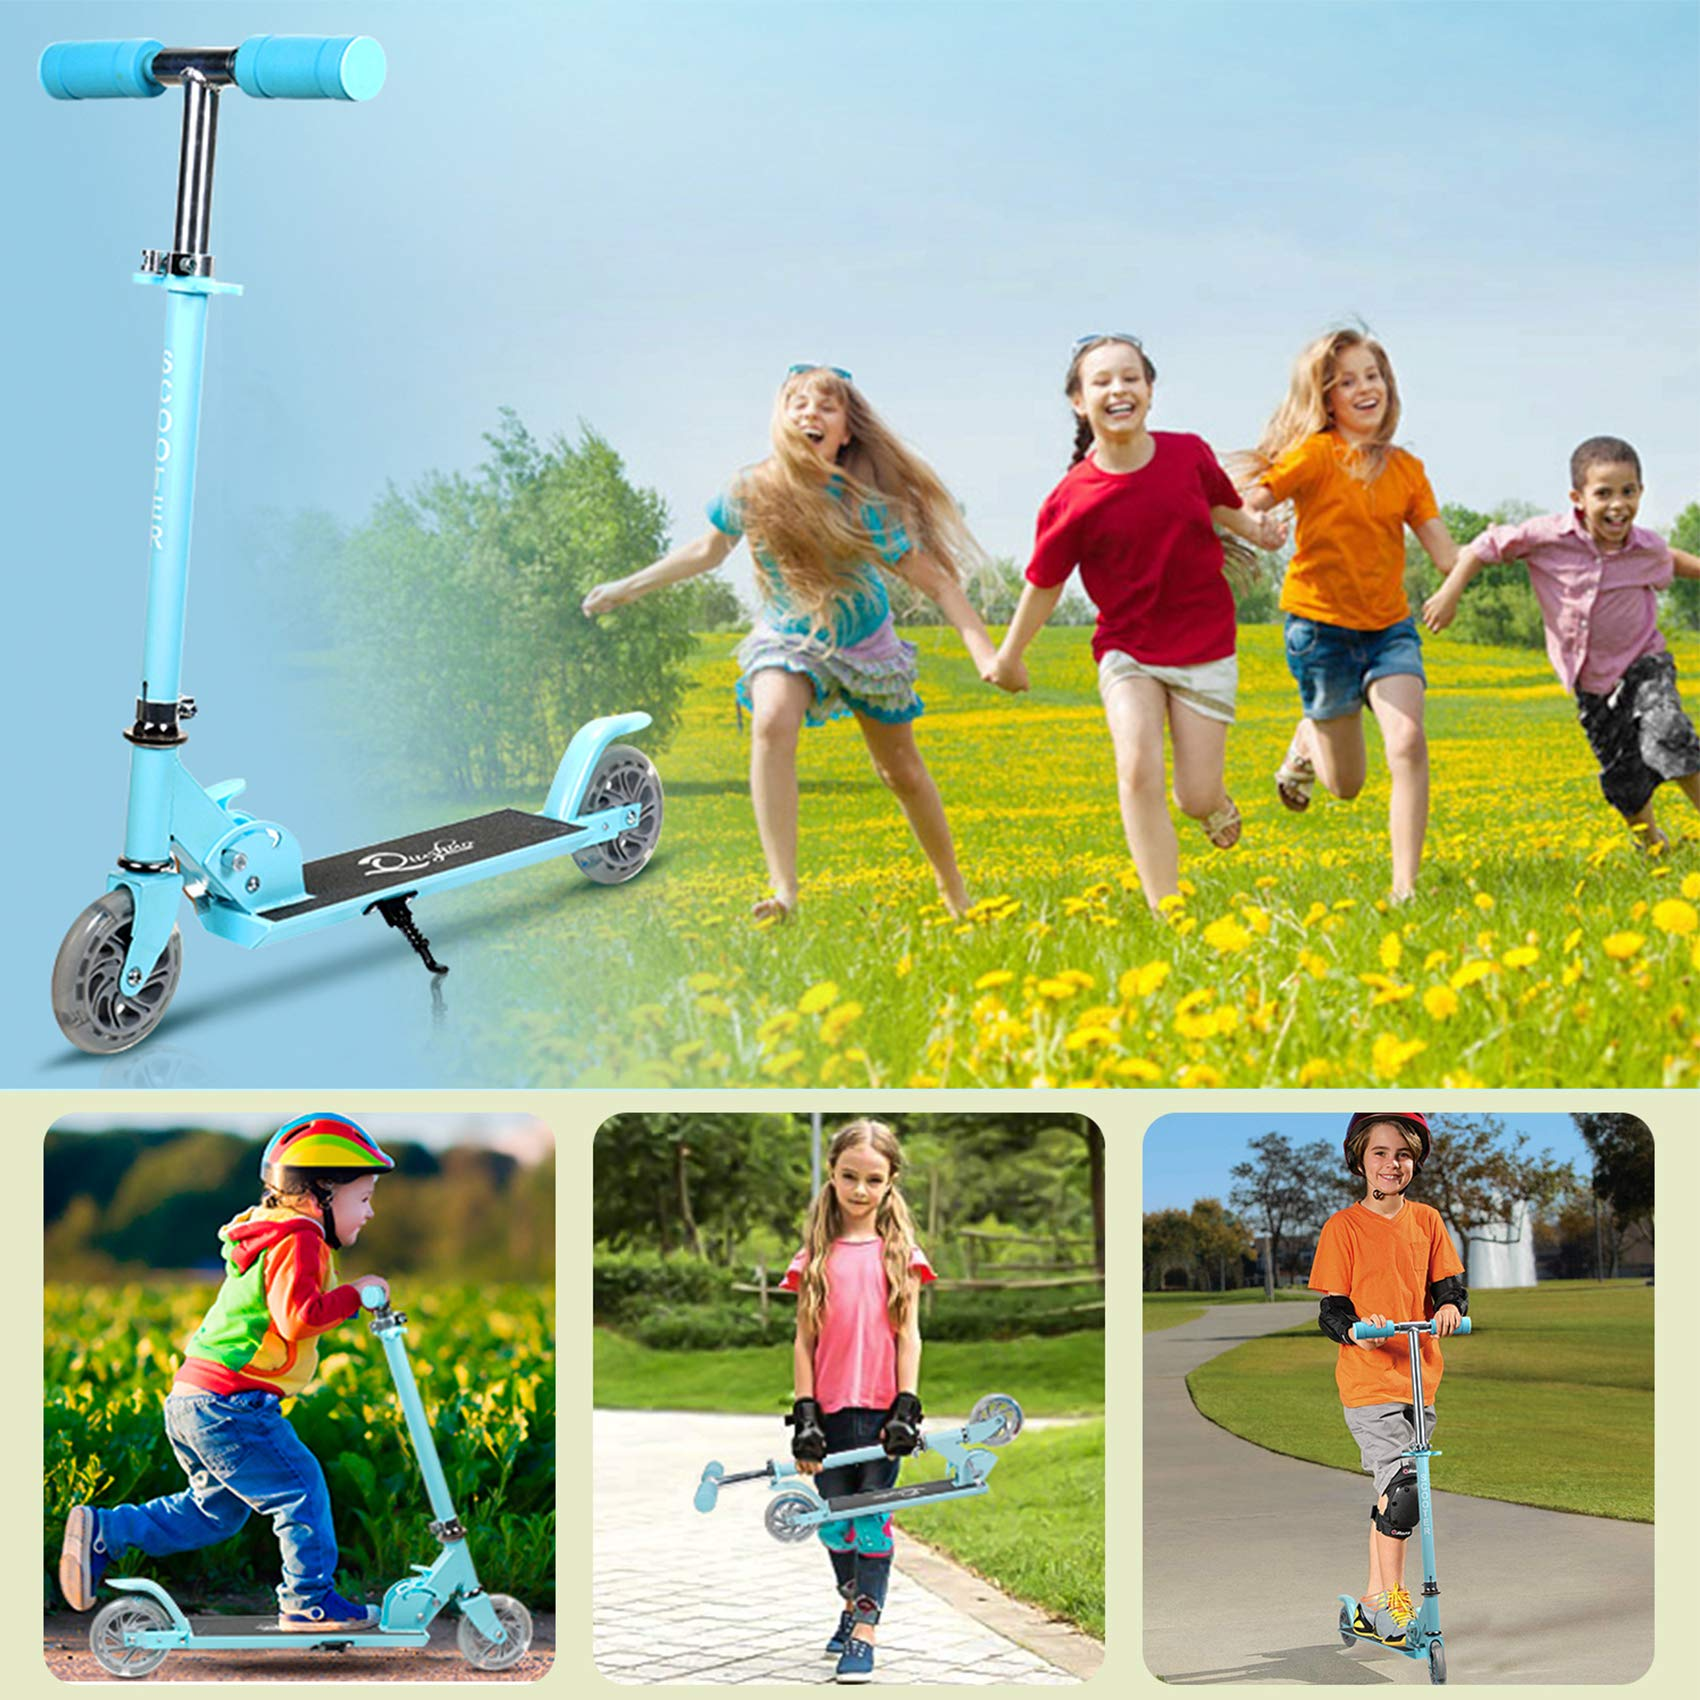 MONODEAL Kids Scooter, Kick Scooters for Kids Ages 3-12, Light Up Scooter with 2 Wheels for Boys Girls, Lightweight Folding Scooter with Adjustable Height